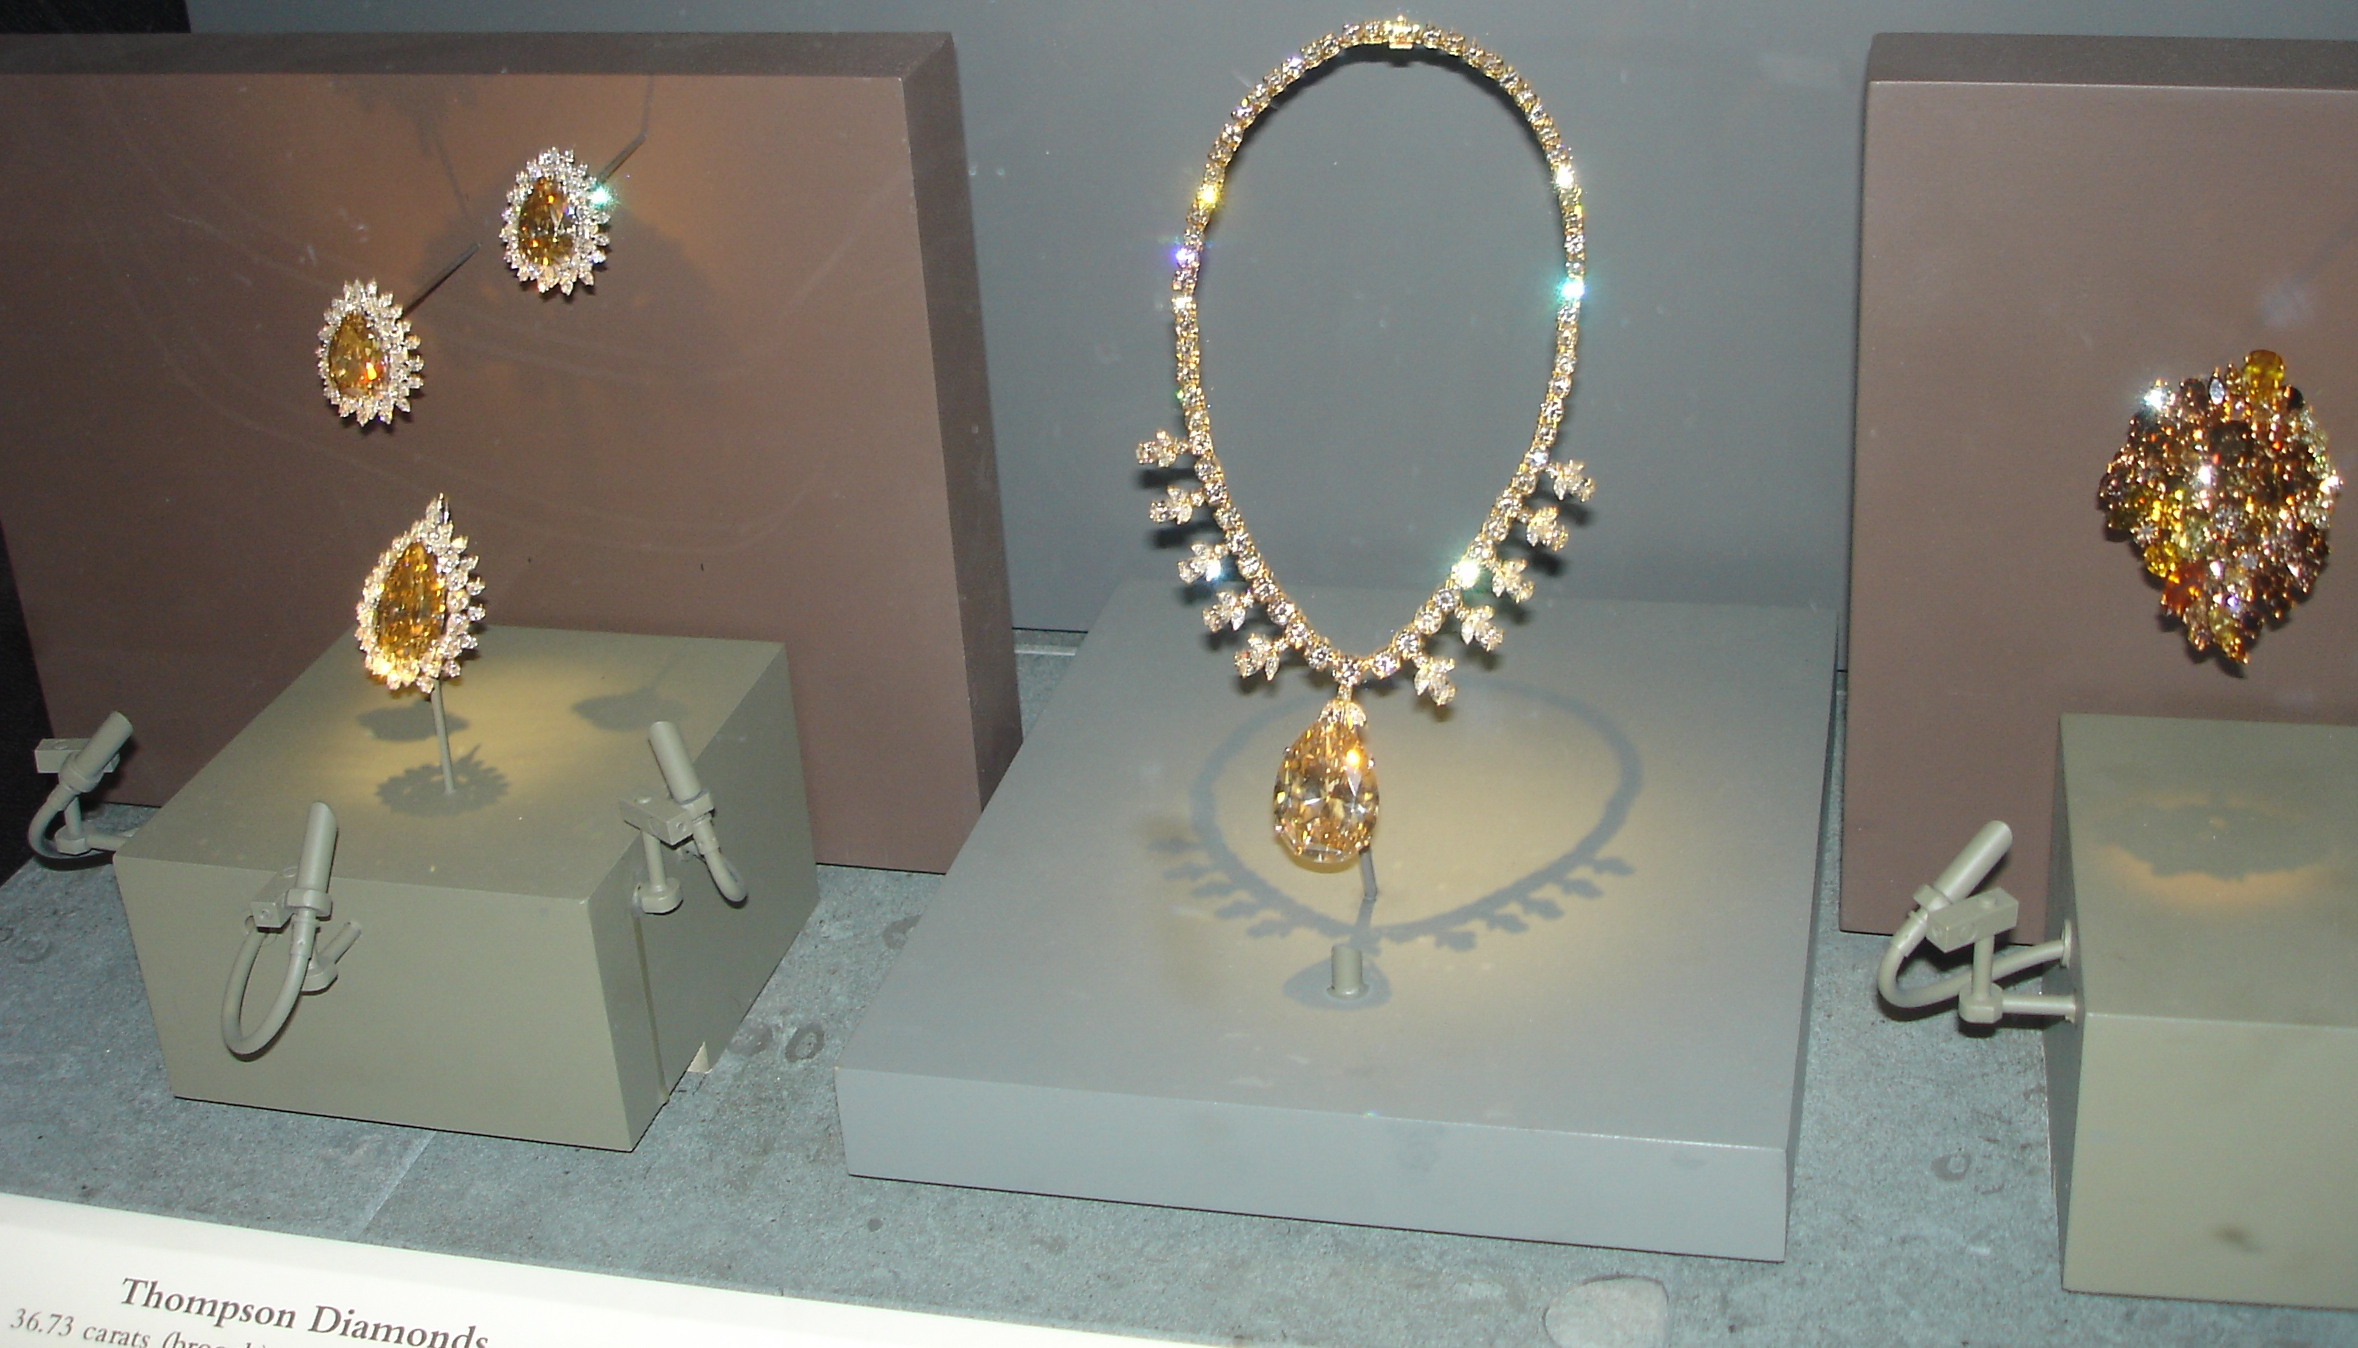 A museum display of jewelry items. Three brooches each consist of a large brown central gem surrounded by many clear small stones. A necklace has a large brown gem at its bottom and its string is all covered with small clear gems. A cluster-shaped decoration contains many brown gems.